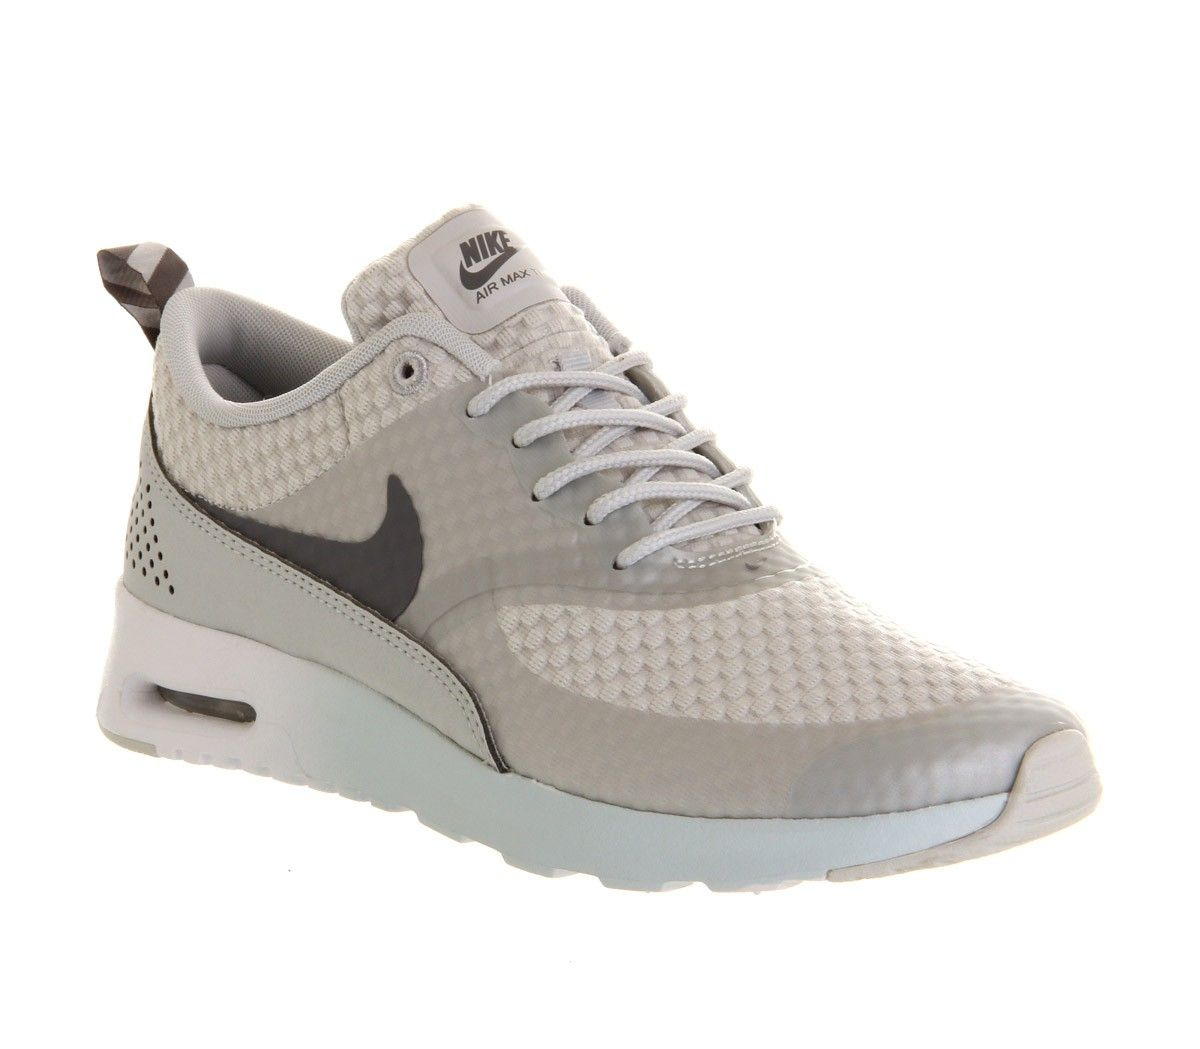 nike men's air max 90 winter prm running shoes nz